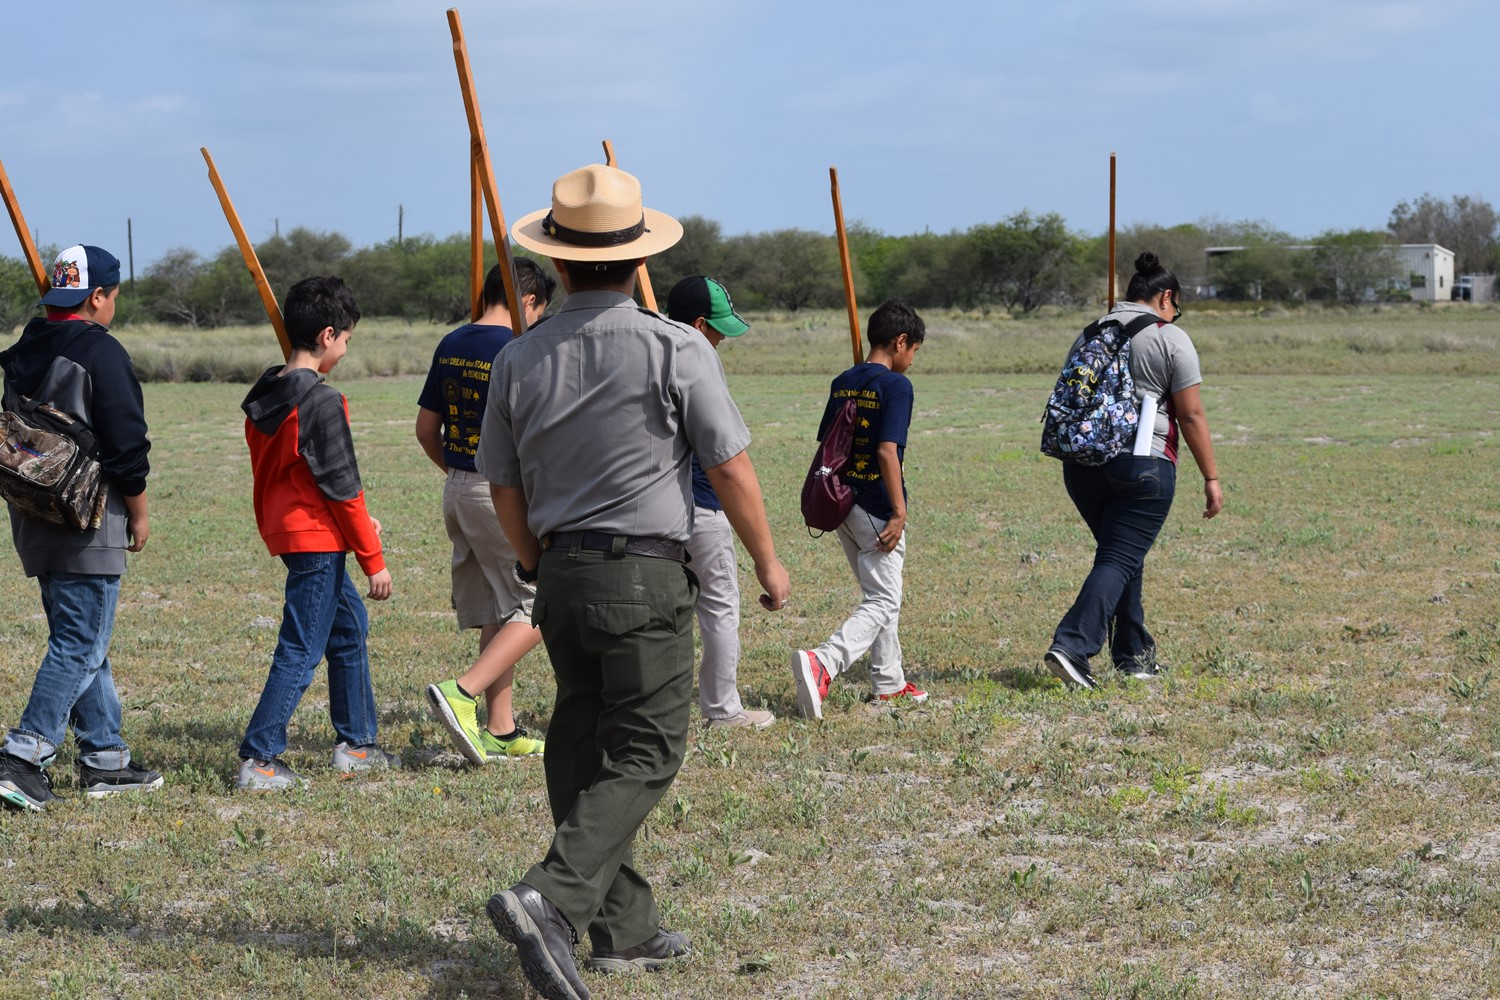 Students are doing infantry drills with wooden muskets